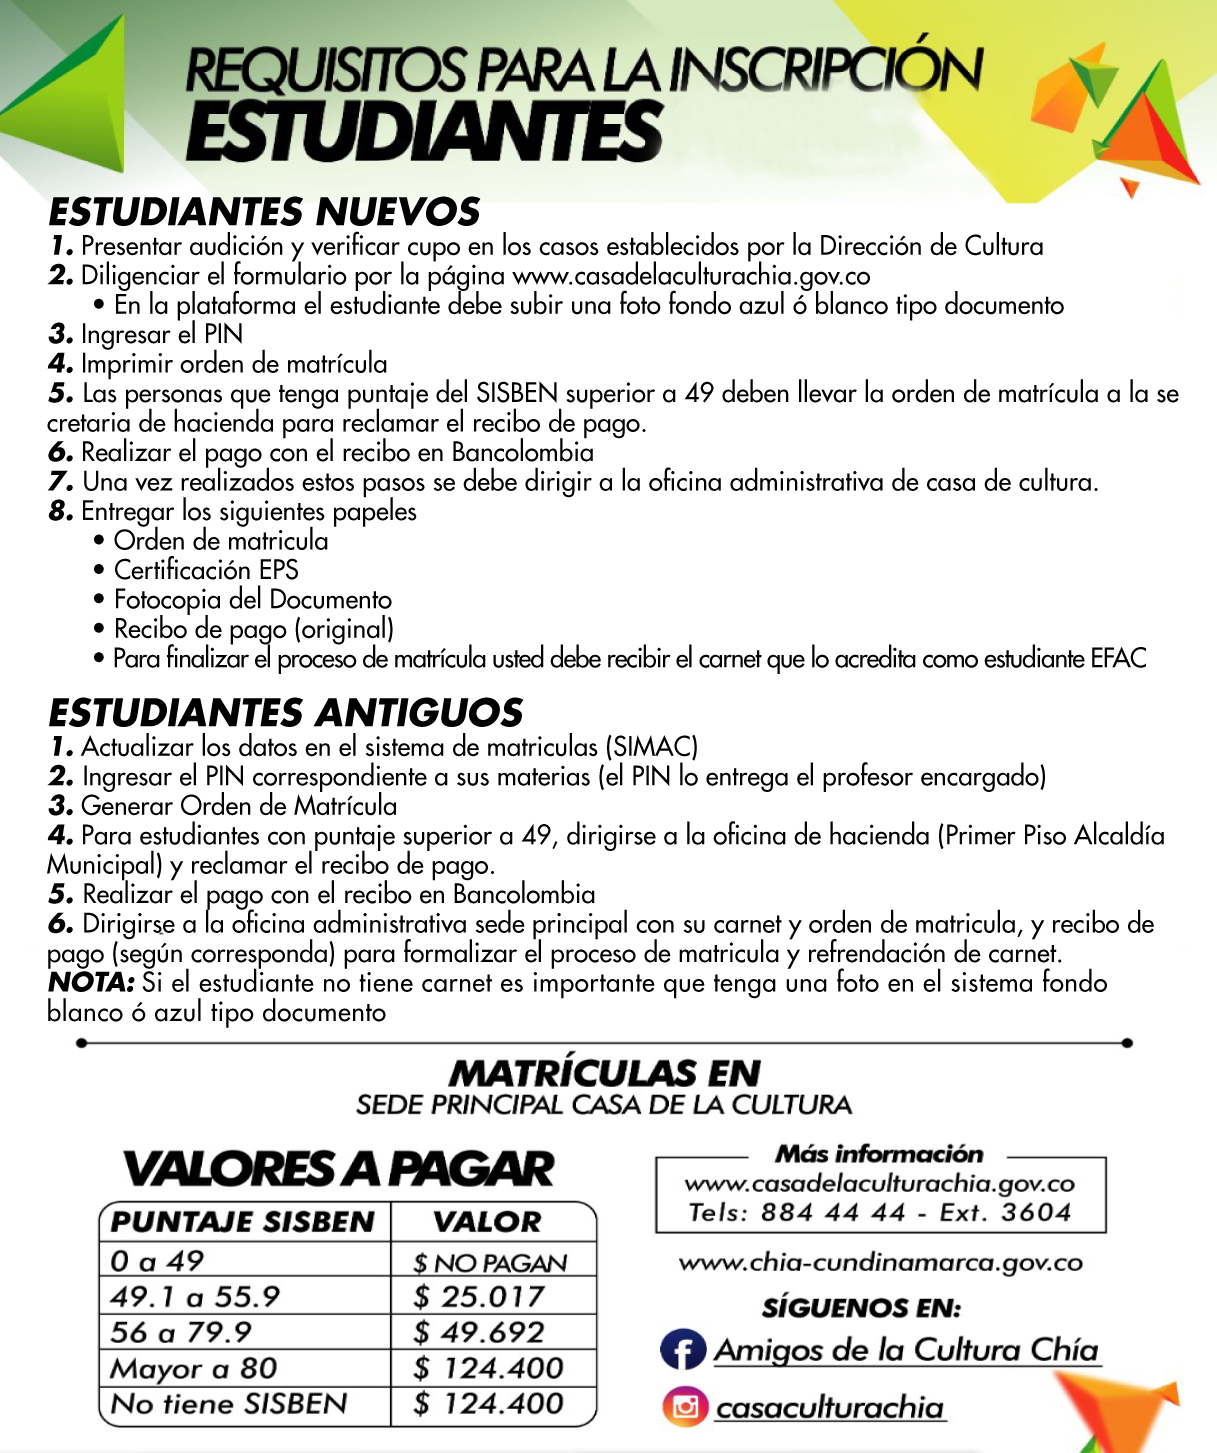 Requisitos-Matriculas-web1